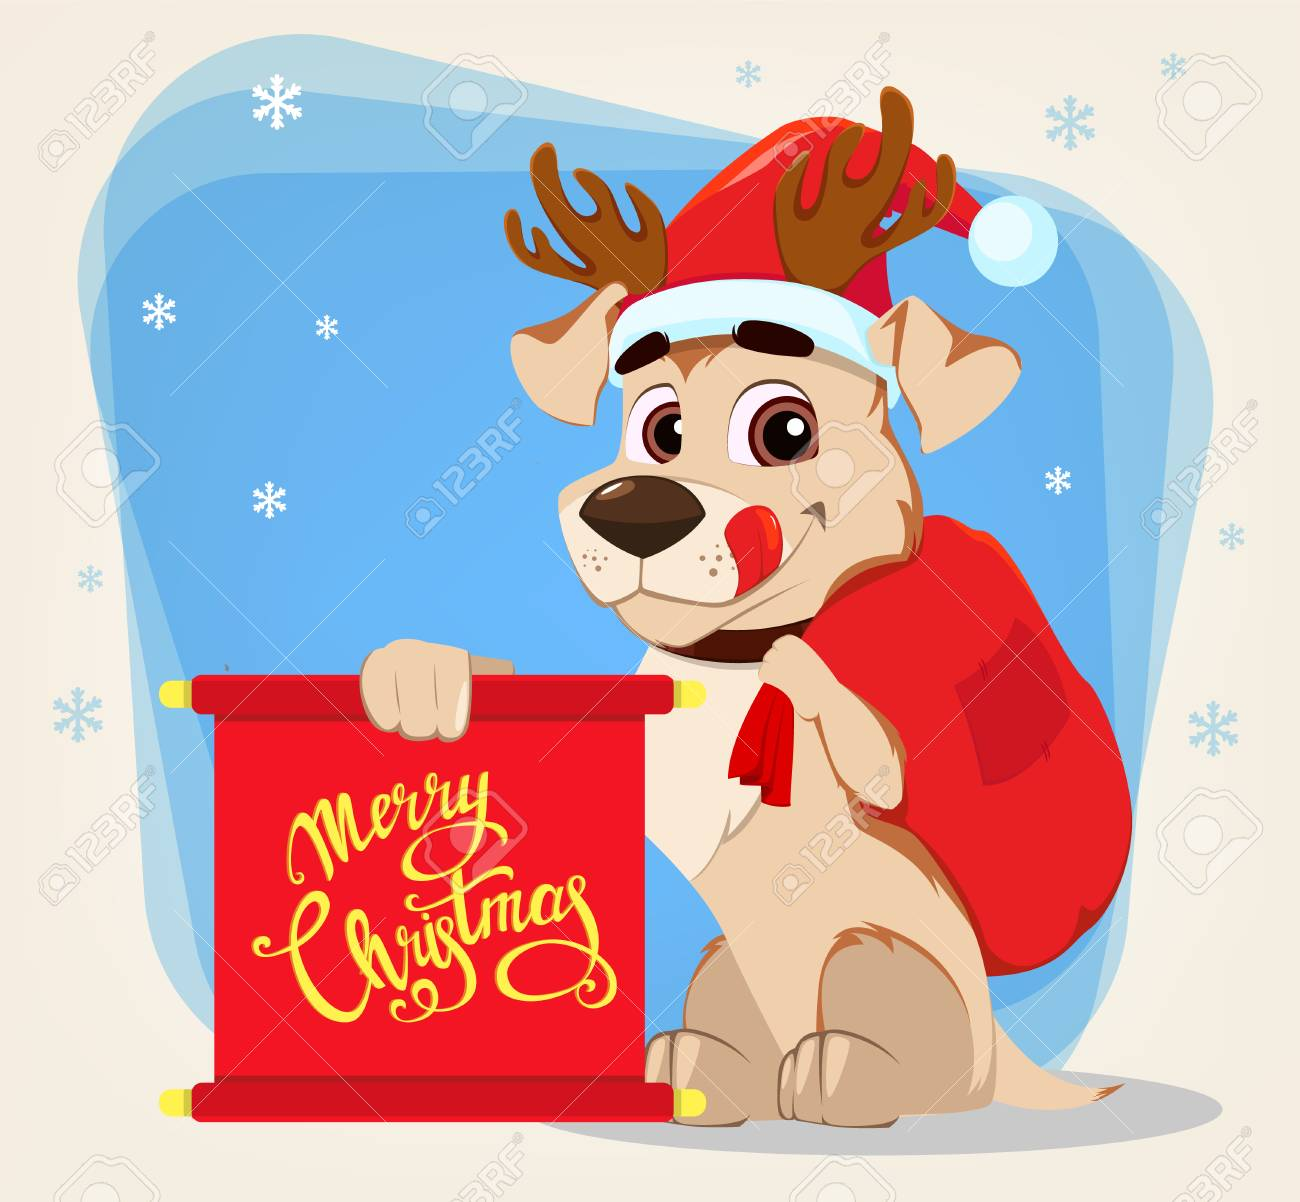 Merry Christmas Wishes Funny.Merry Christmas Greeting Card Funny Dog Wearing Santa Claus